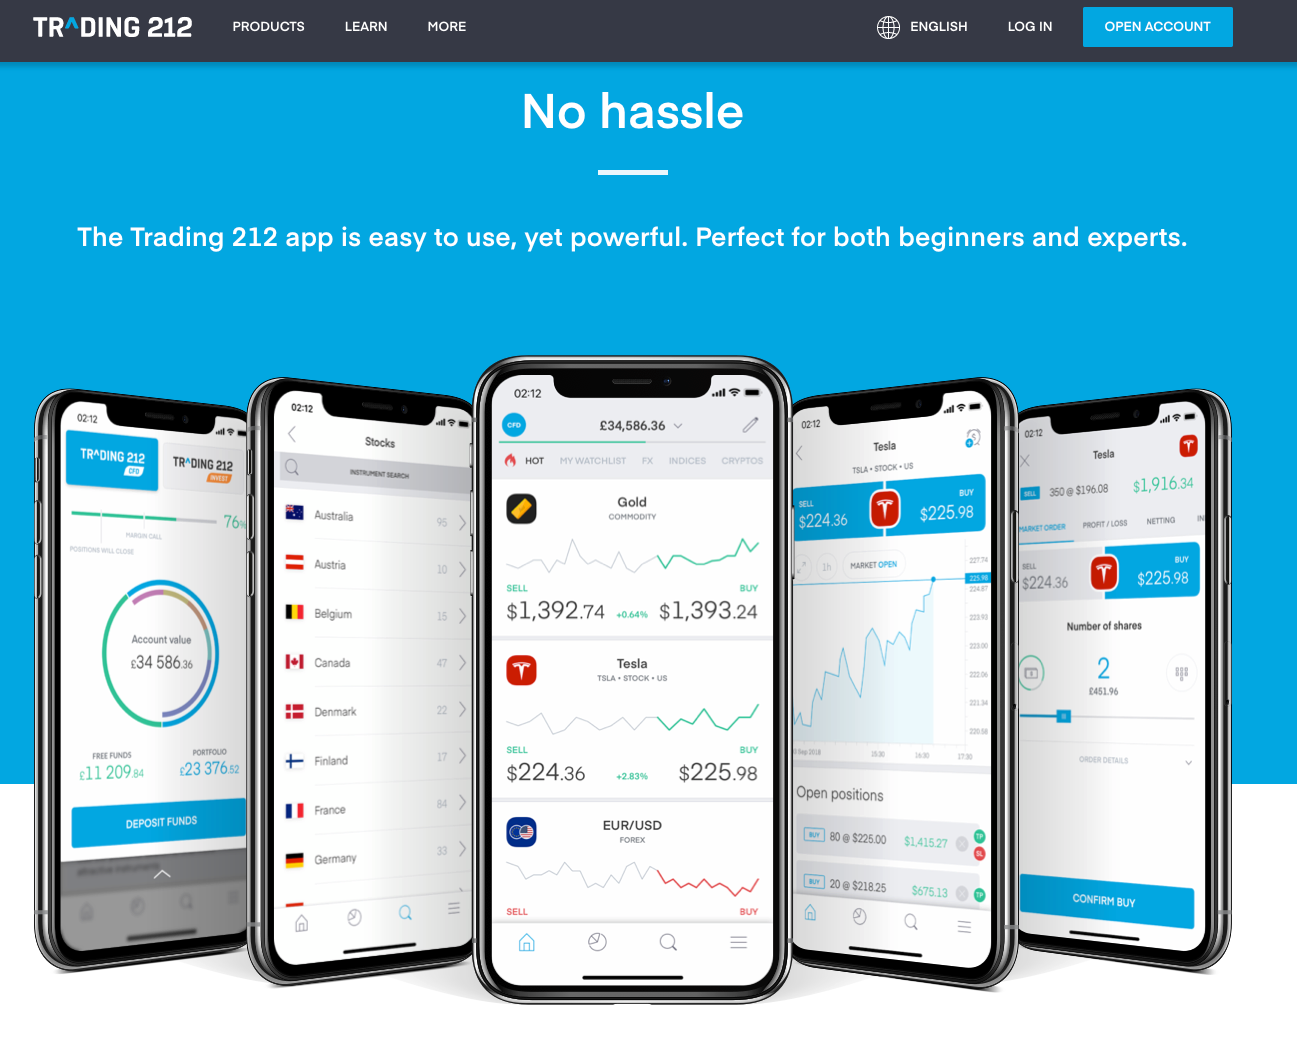 Trading212 Mobile App Review